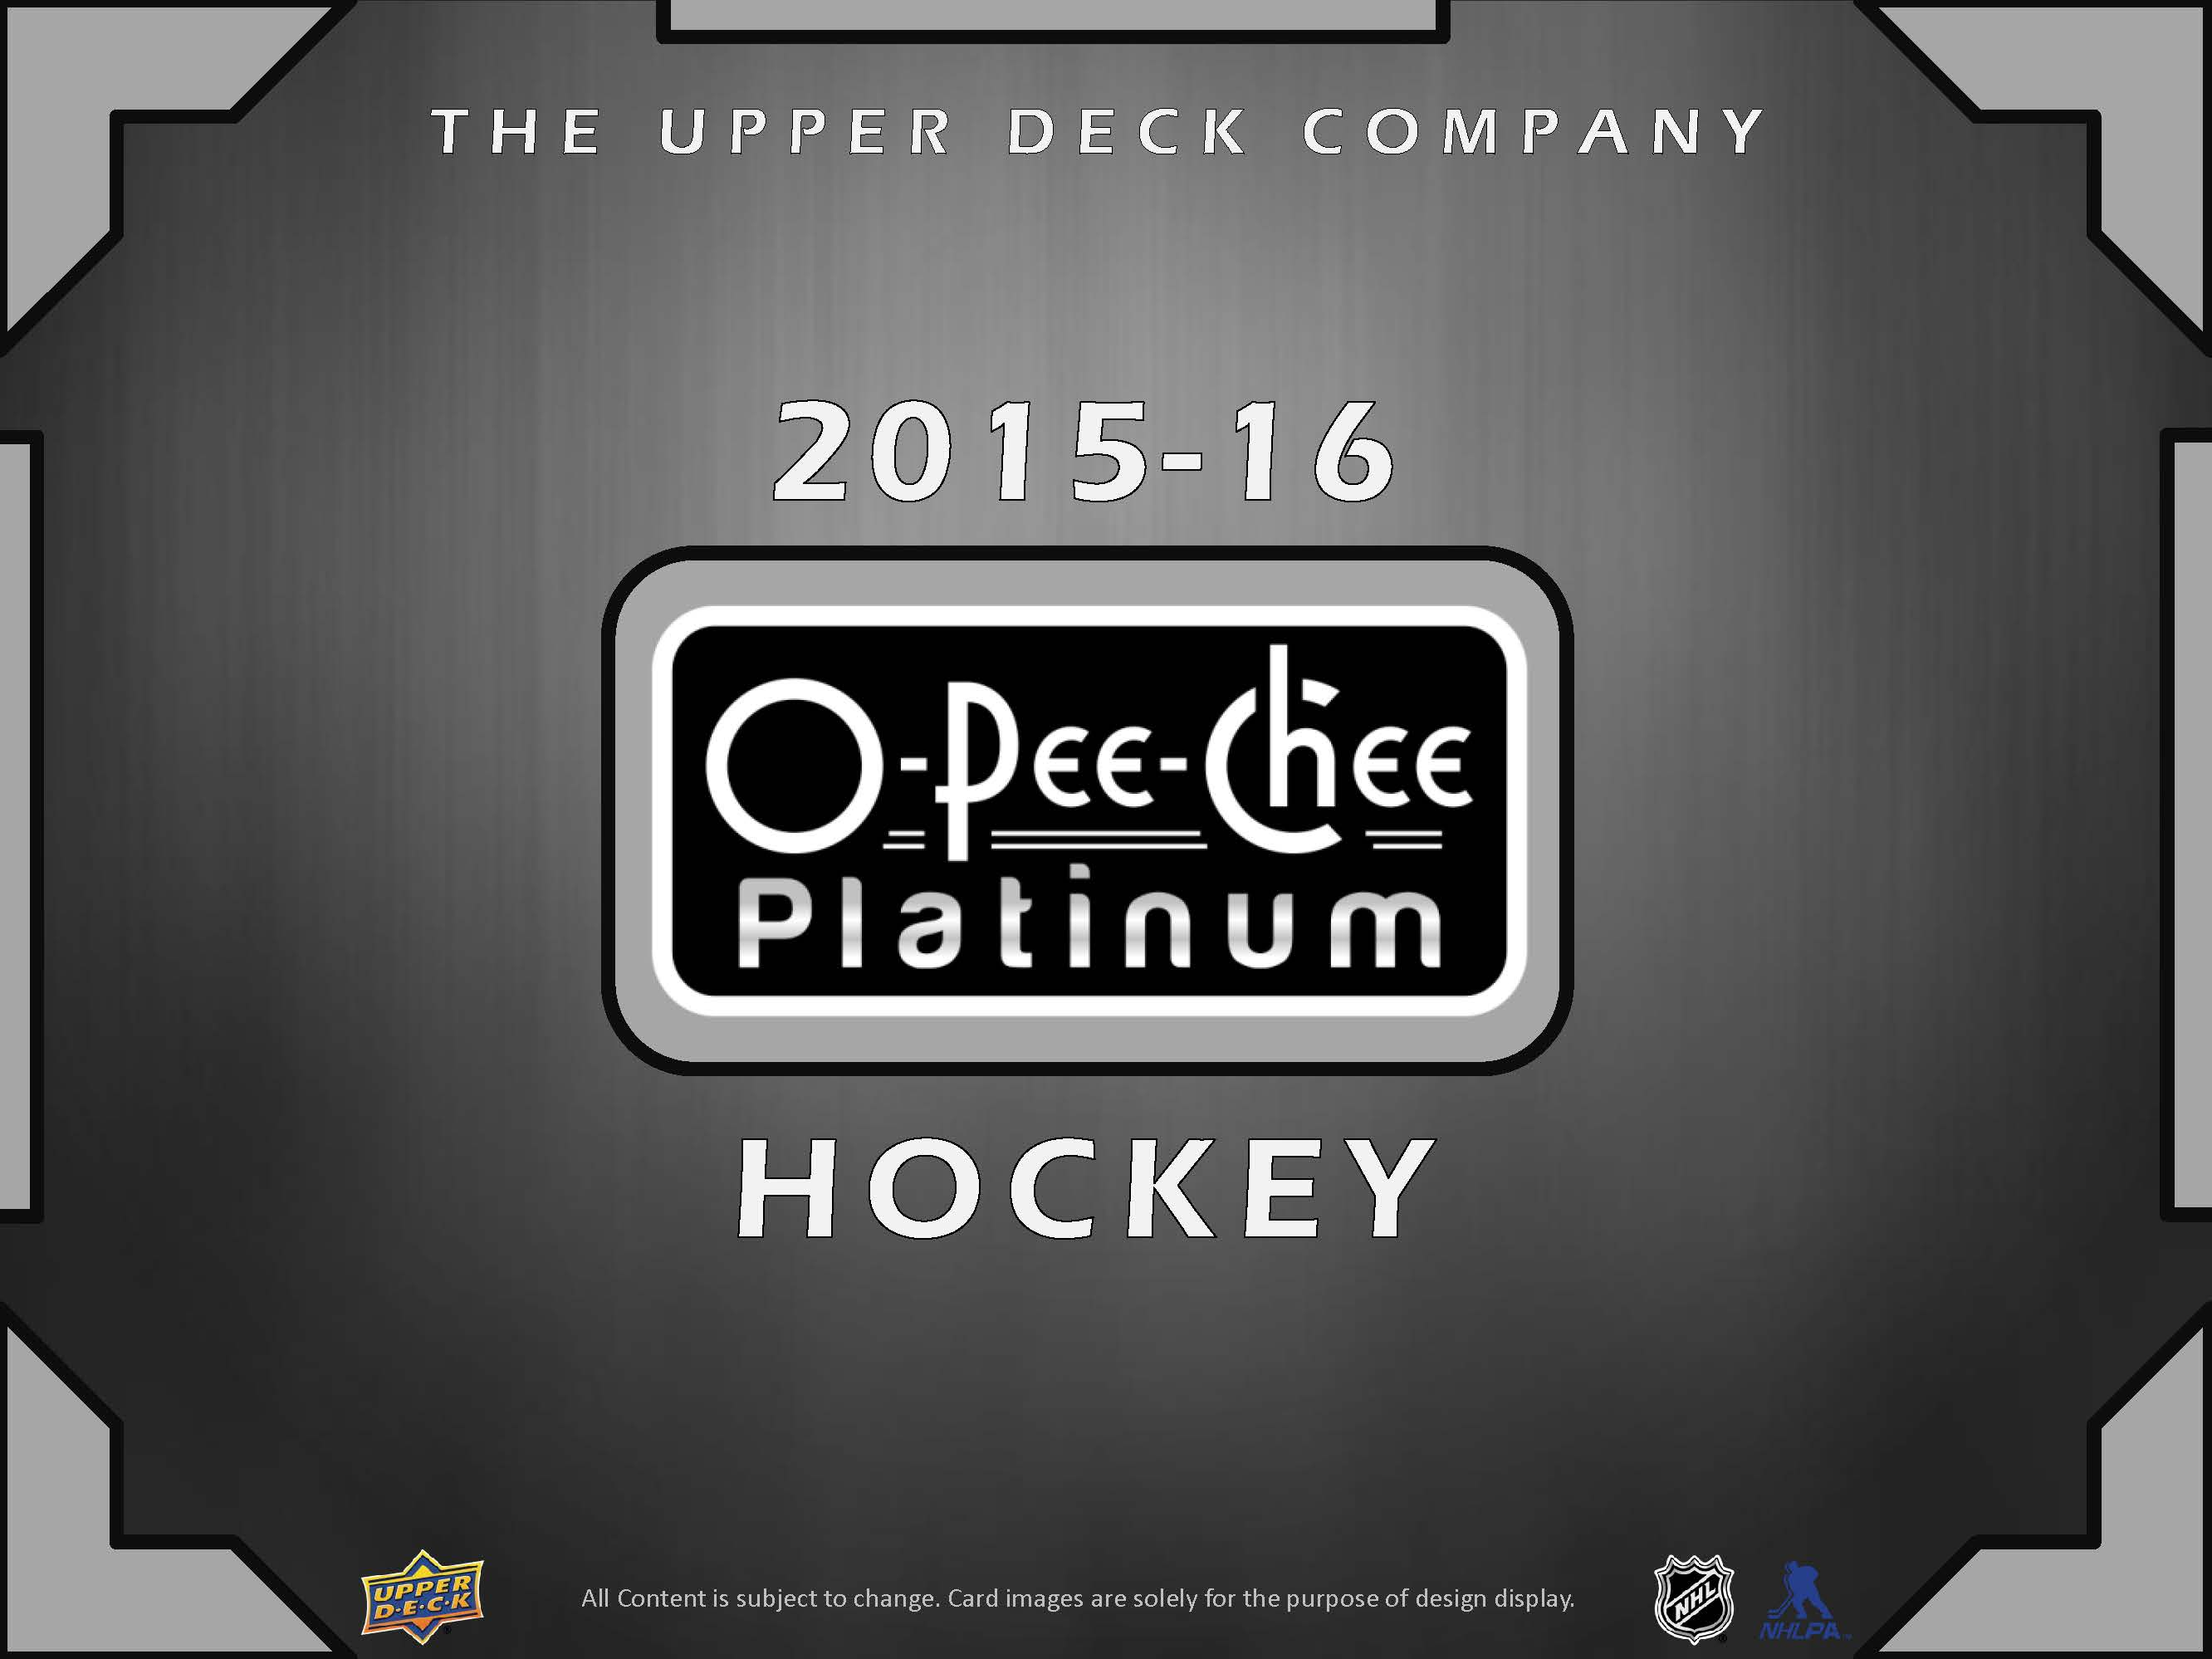 2015-16 O-Pee-Chee Platinum Hockey Checklist